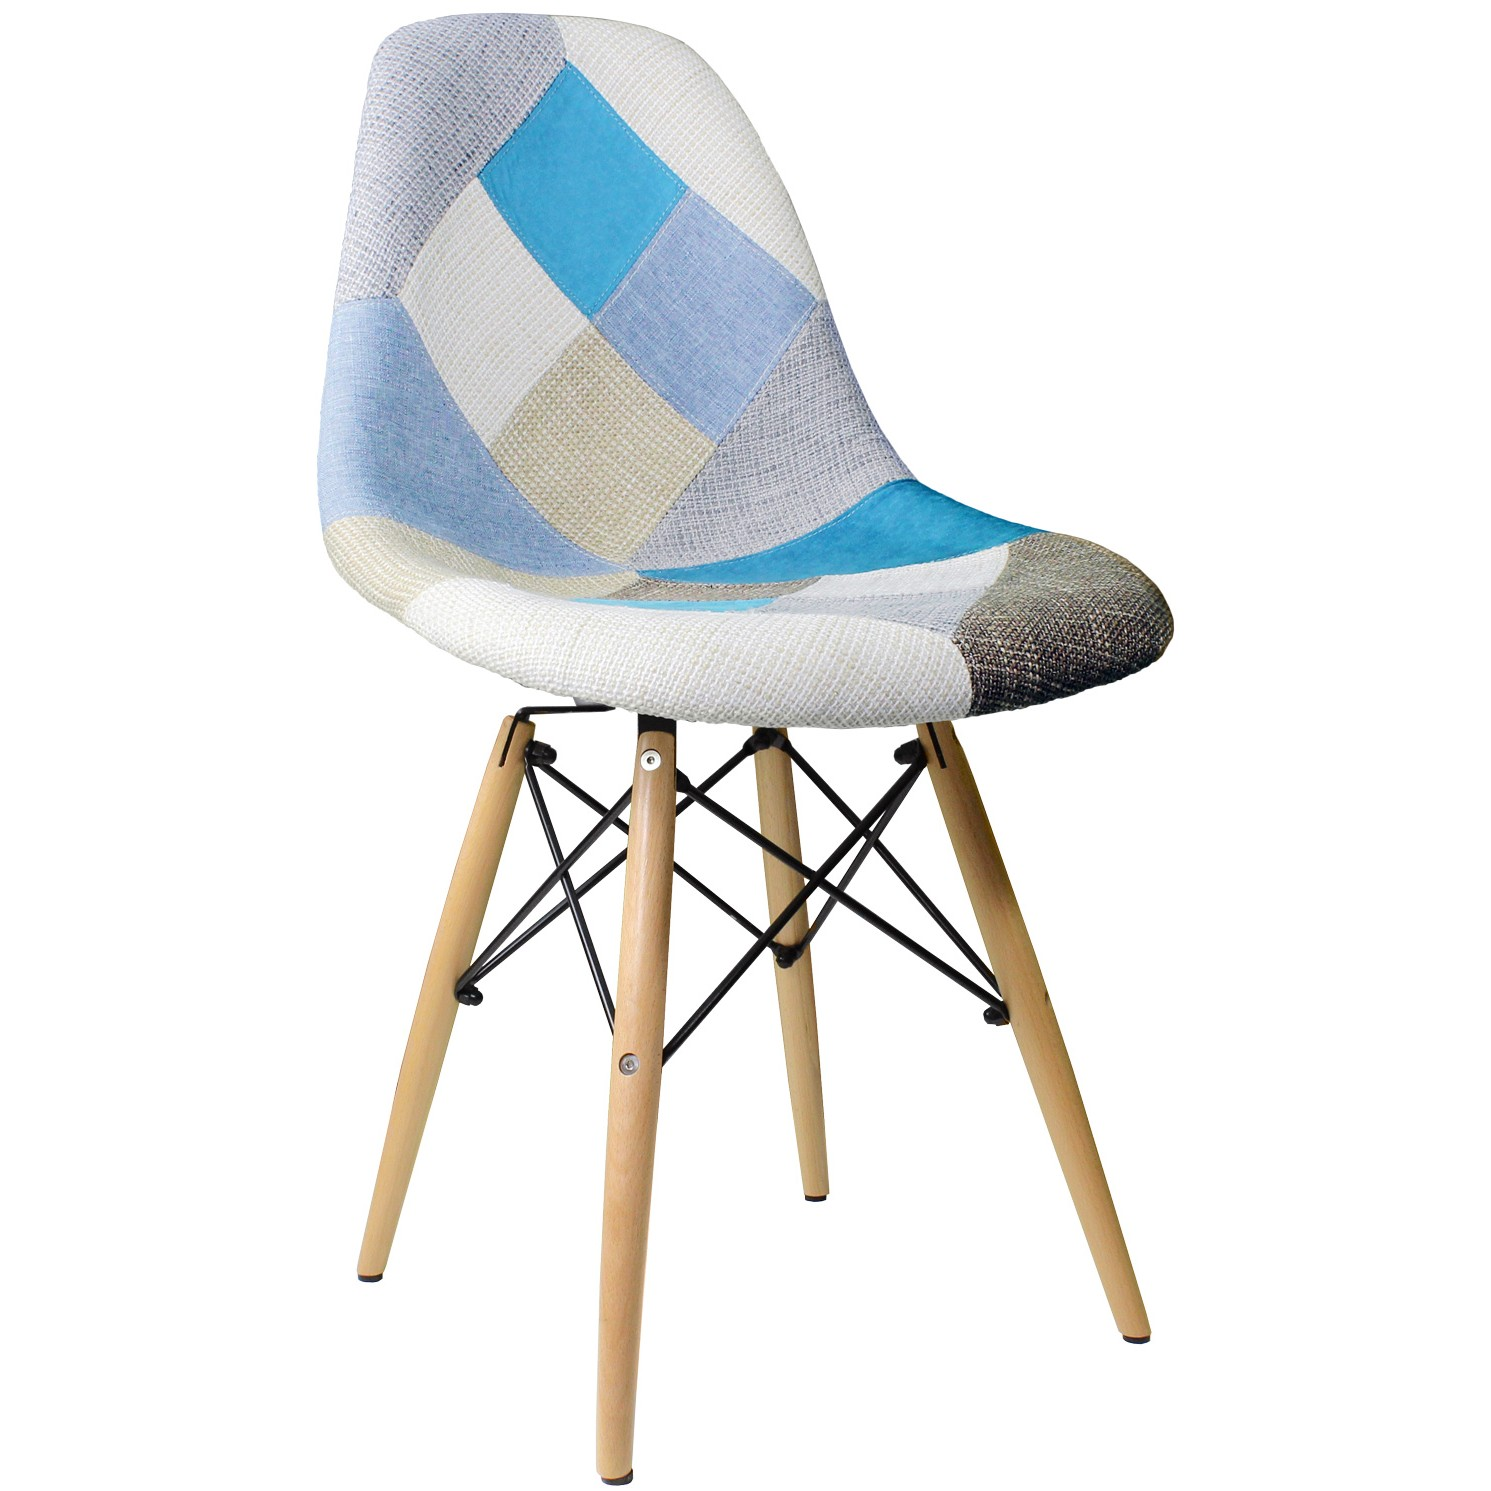 Patchwork Fabric Upholstered Mid Century Eames Style  : dsw fab patchwork3 from www.emoderndecor.com size 1491 x 1491 jpeg 232kB